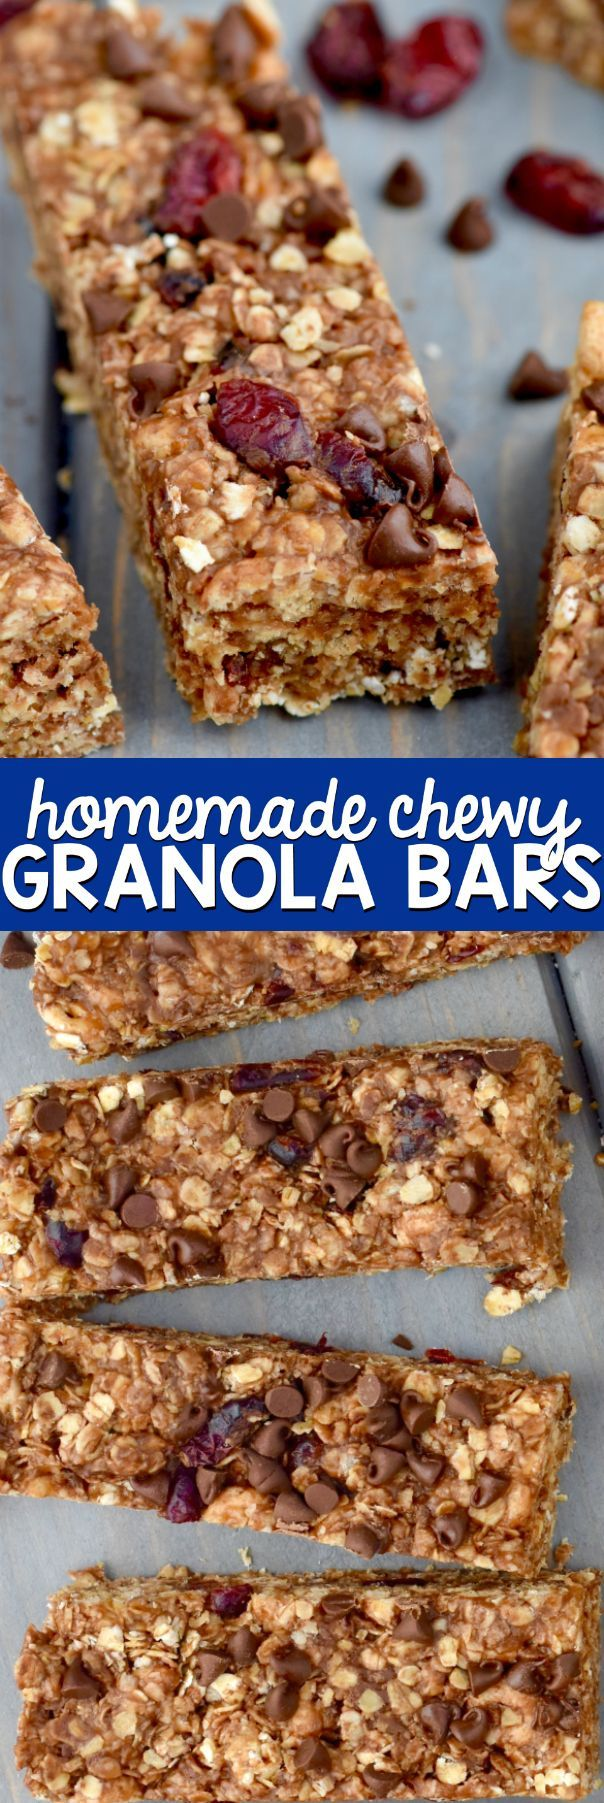 These Homemade Chewy Granola Bars can be made in about 10 minutes, and they are a delicious snack perfect for on the go!